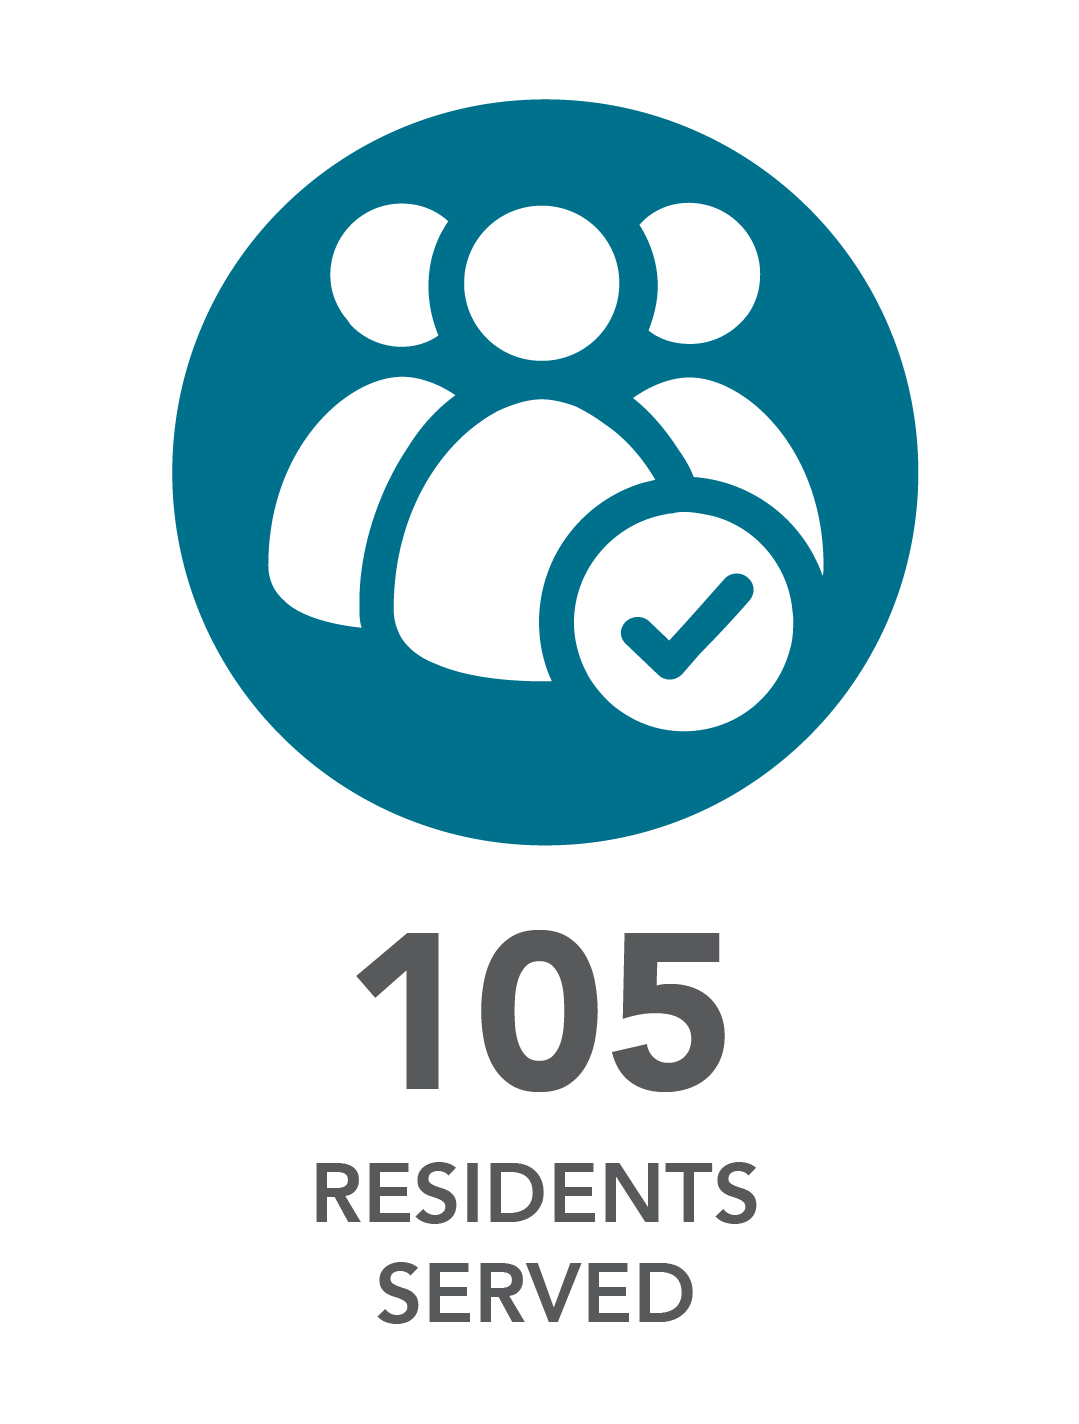 105 residents served.